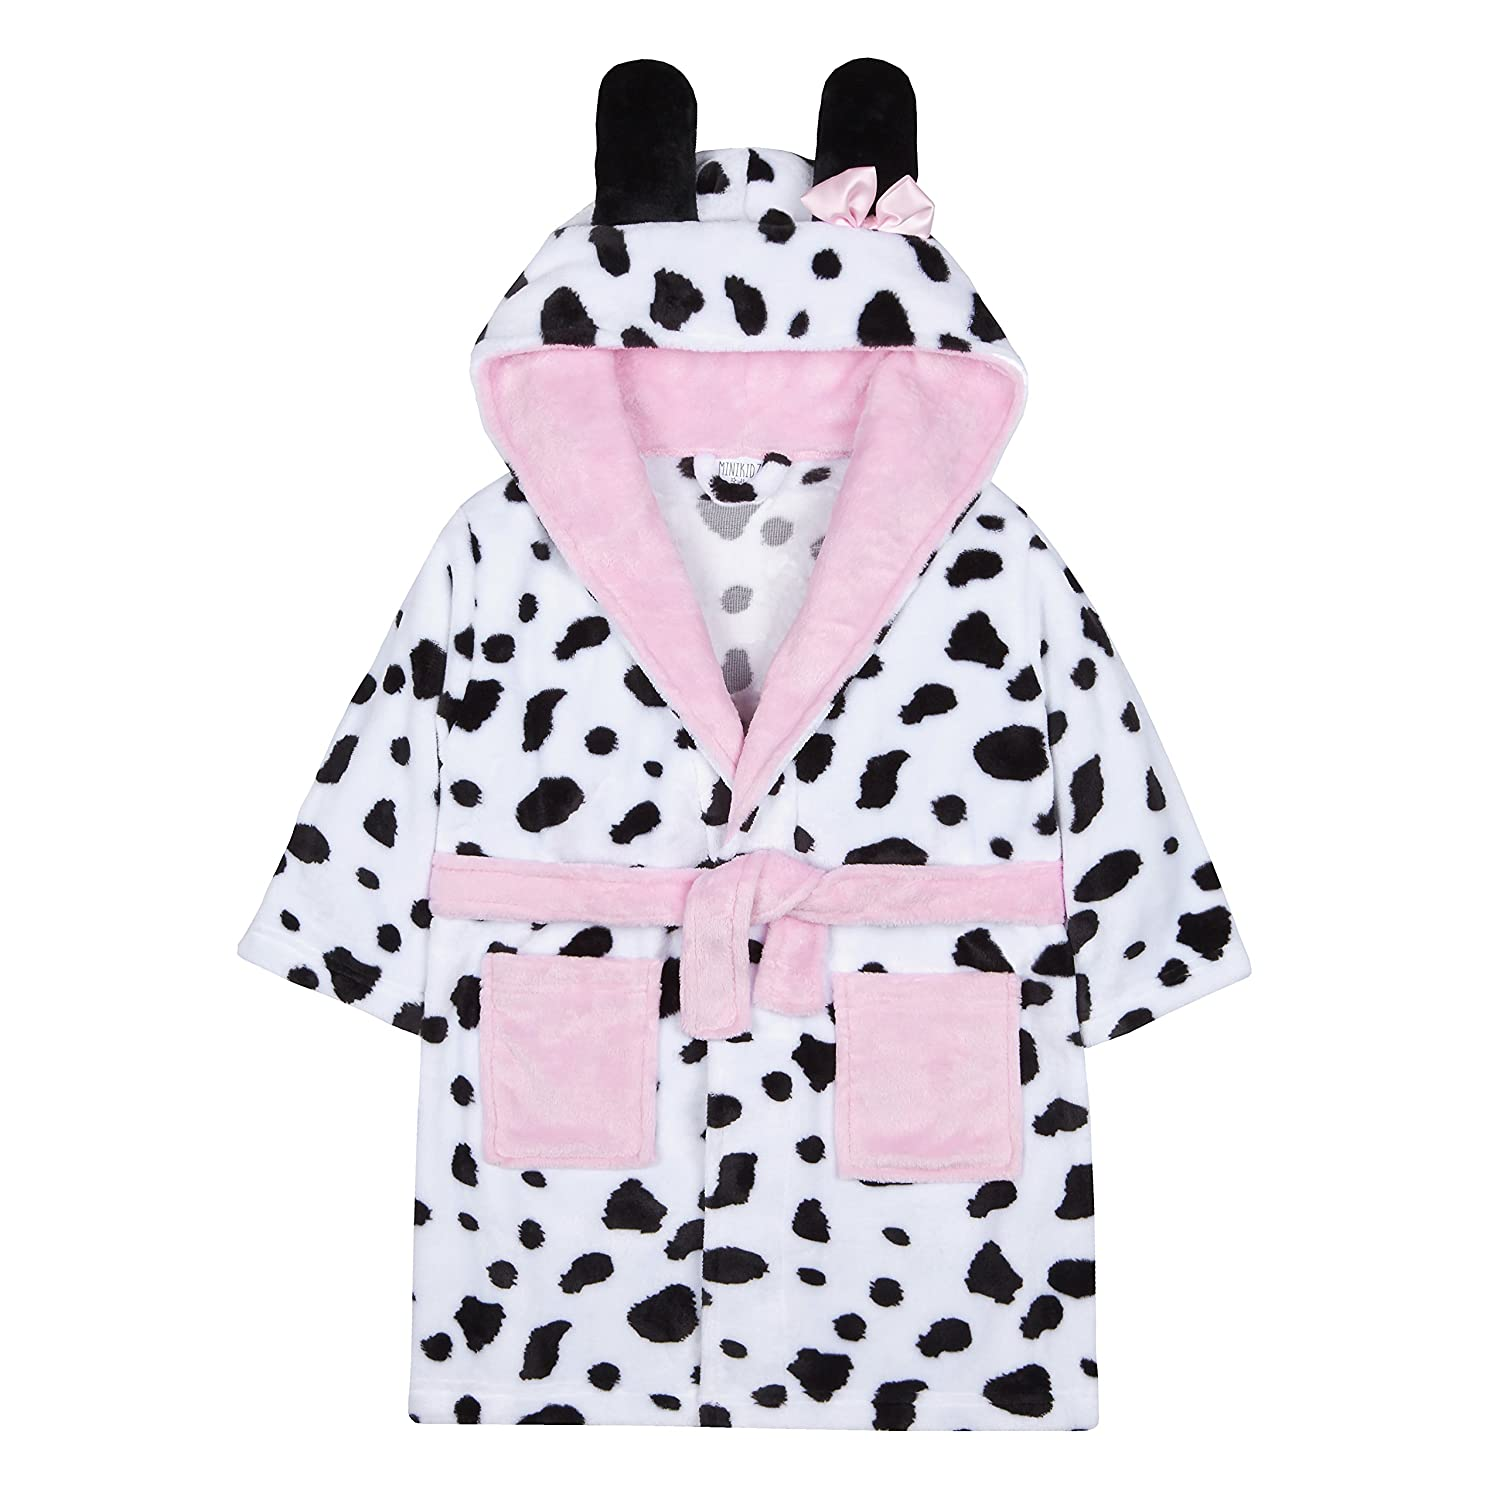 4 KIDZ Kidz Girls Snuggle Soft Hooded Dalmatian Dressing Gown Robe